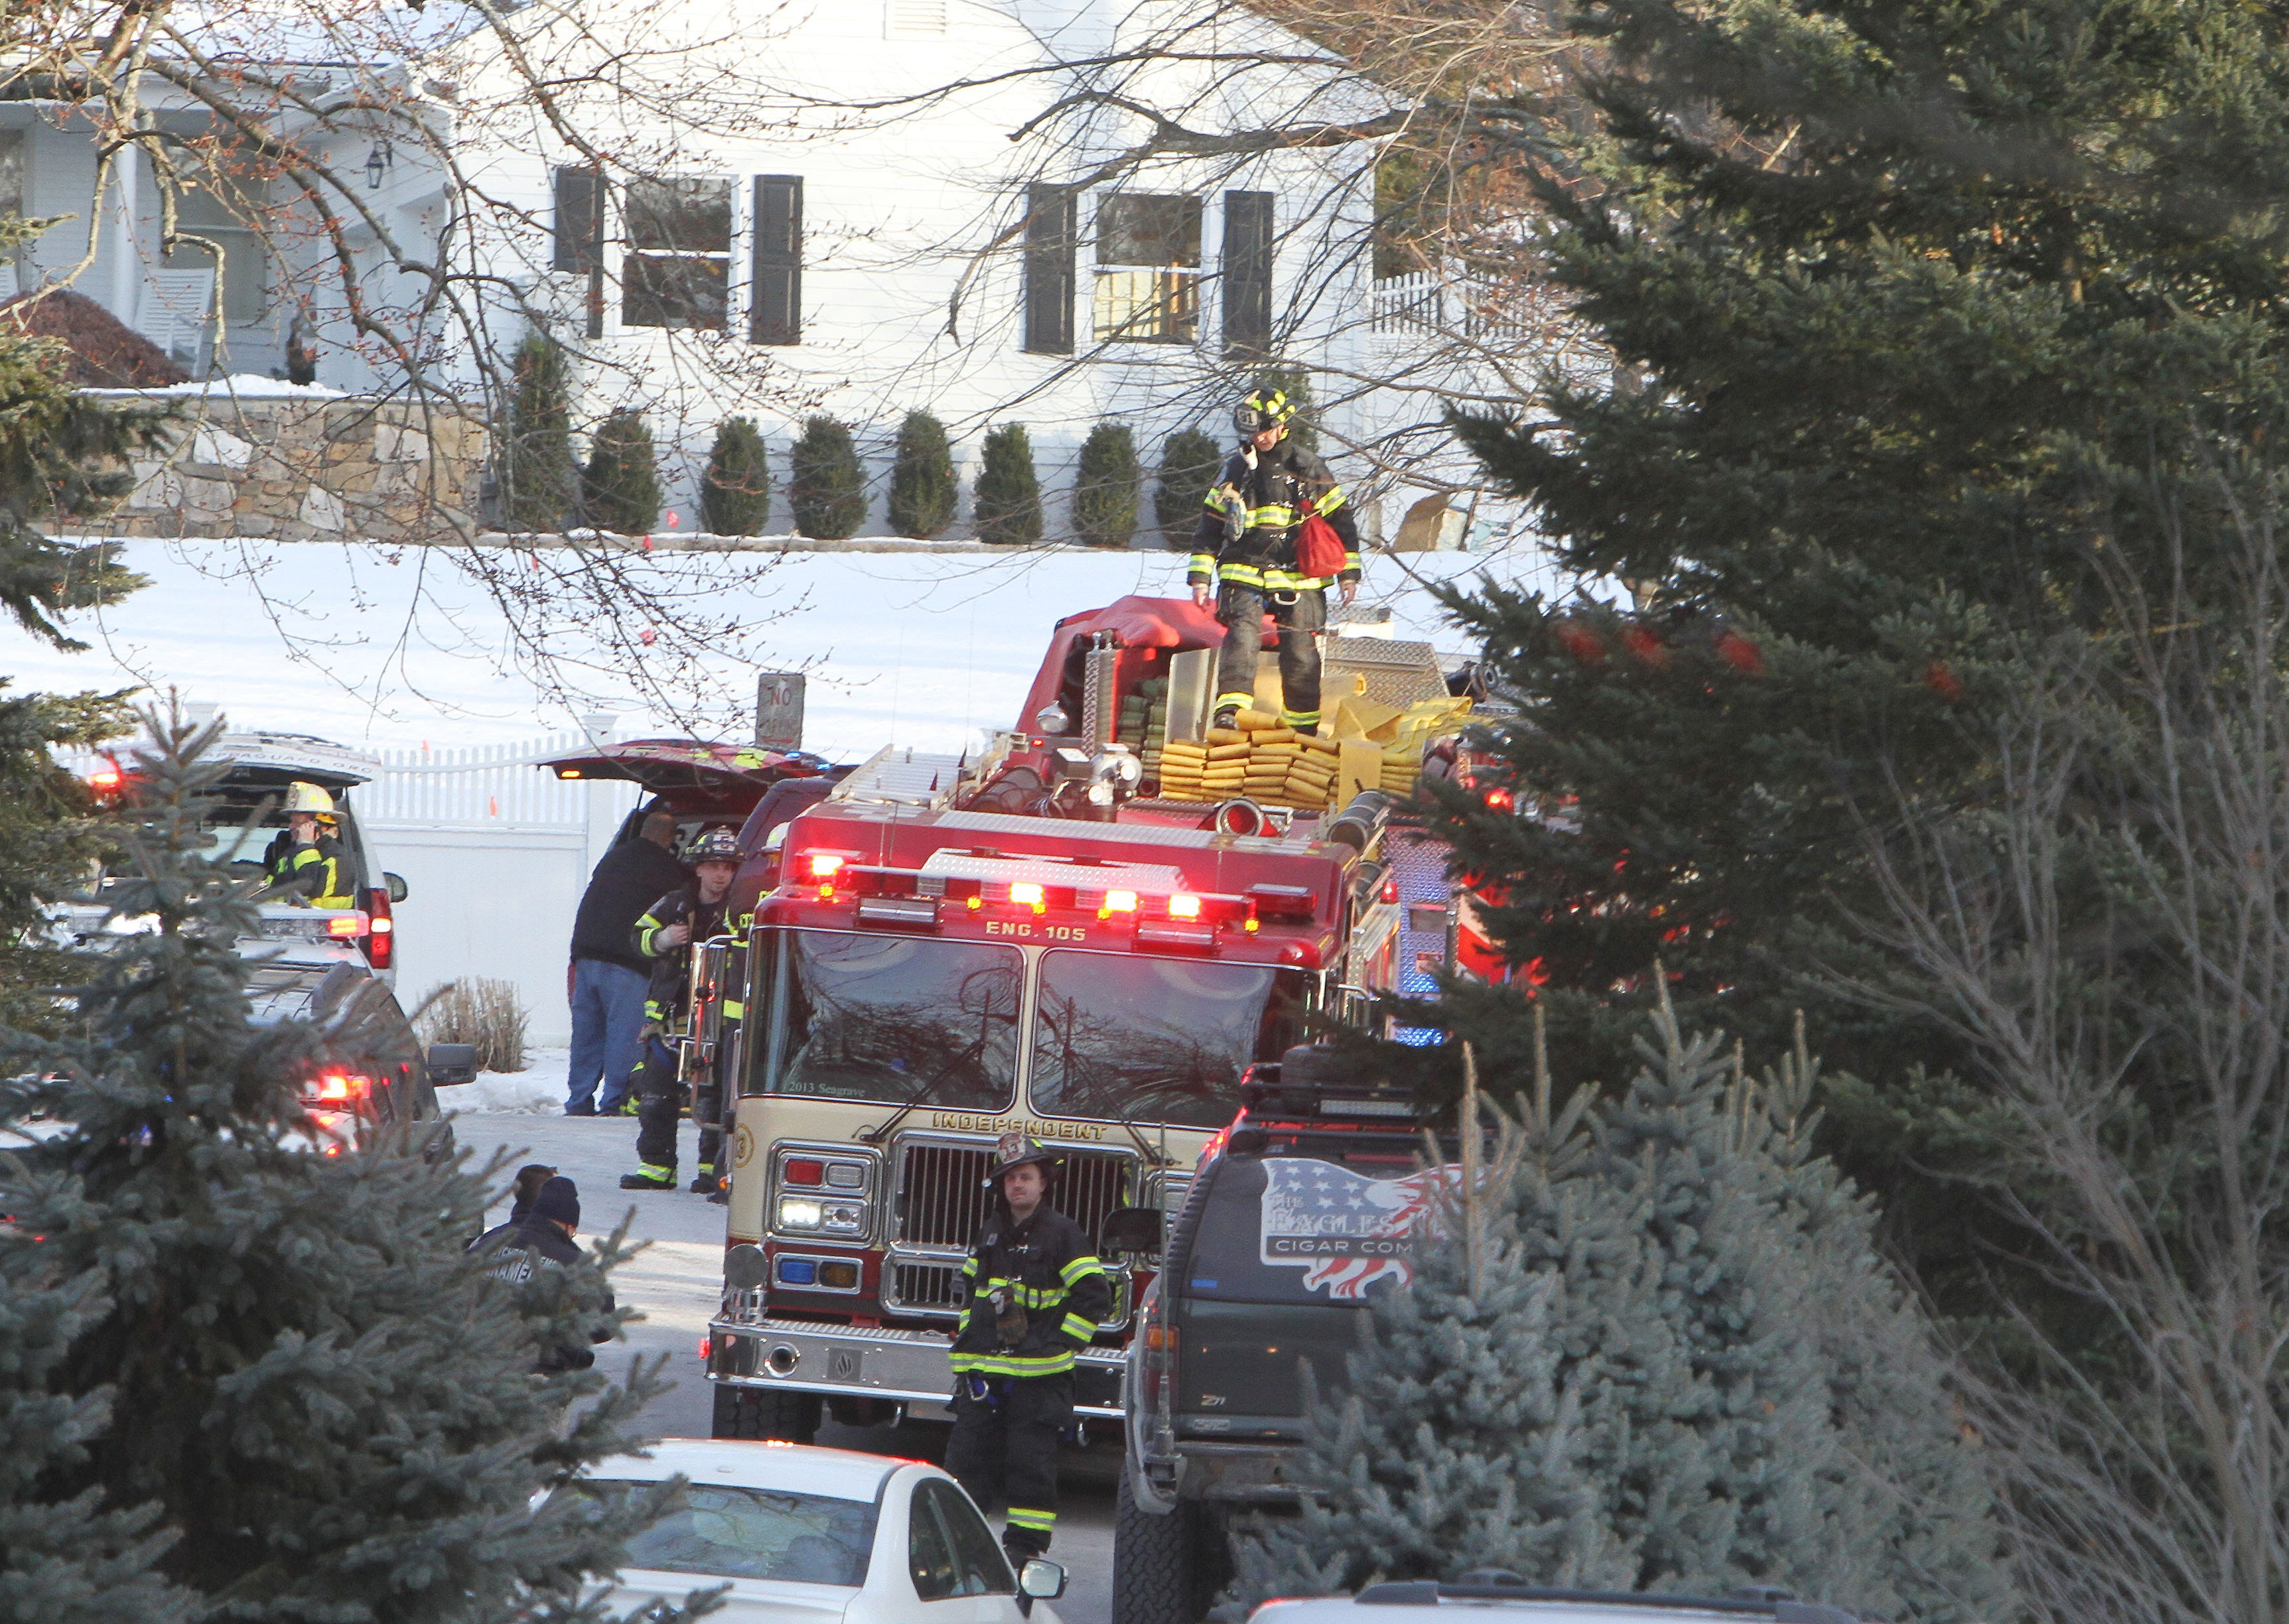 Fire breaks out at Hillary and Bill Clinton's compound in Chappaqua, New York